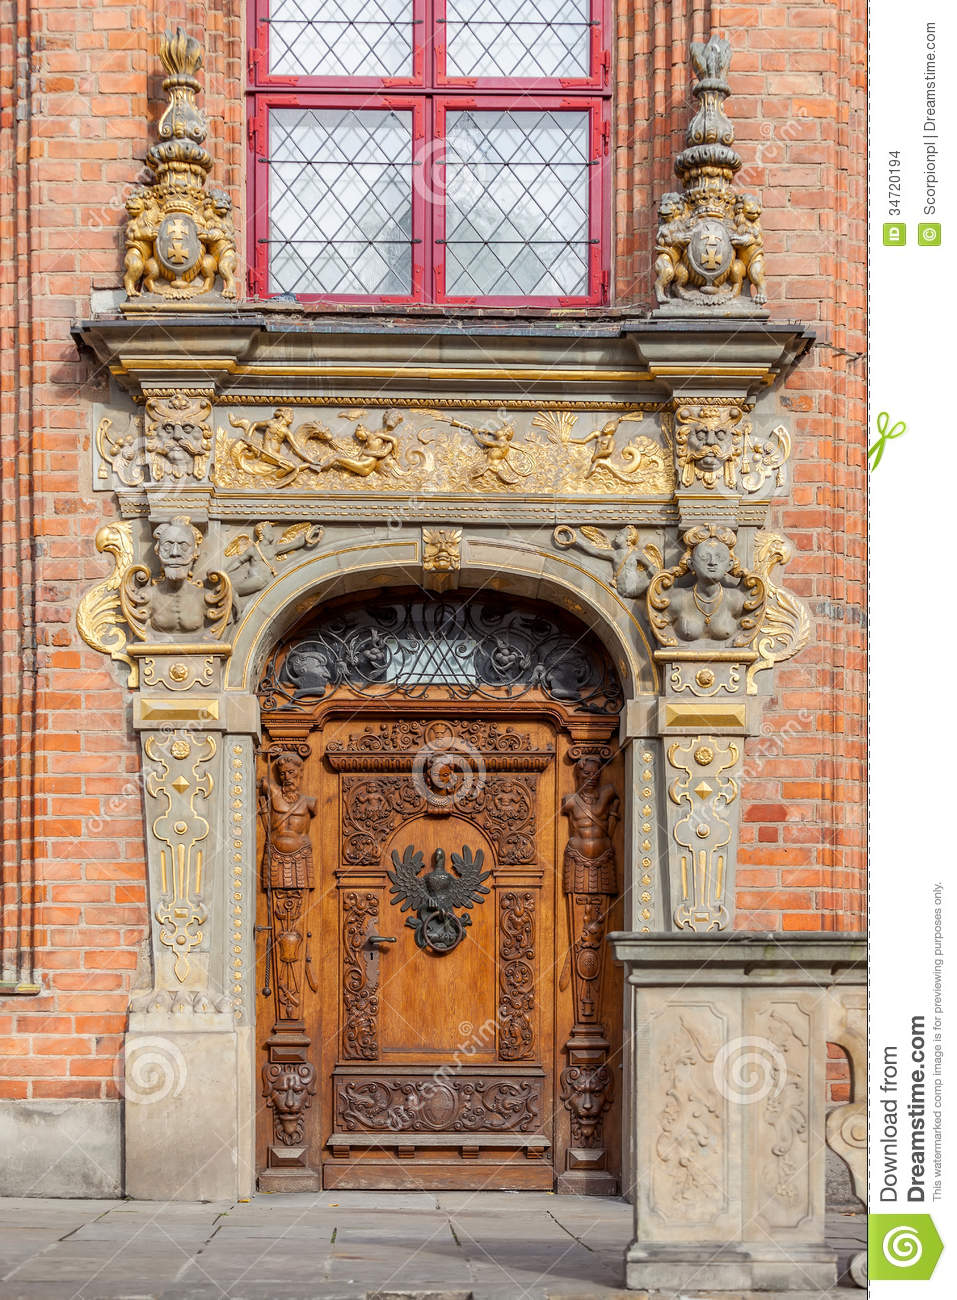 & historic doors - AOL Image Search Results